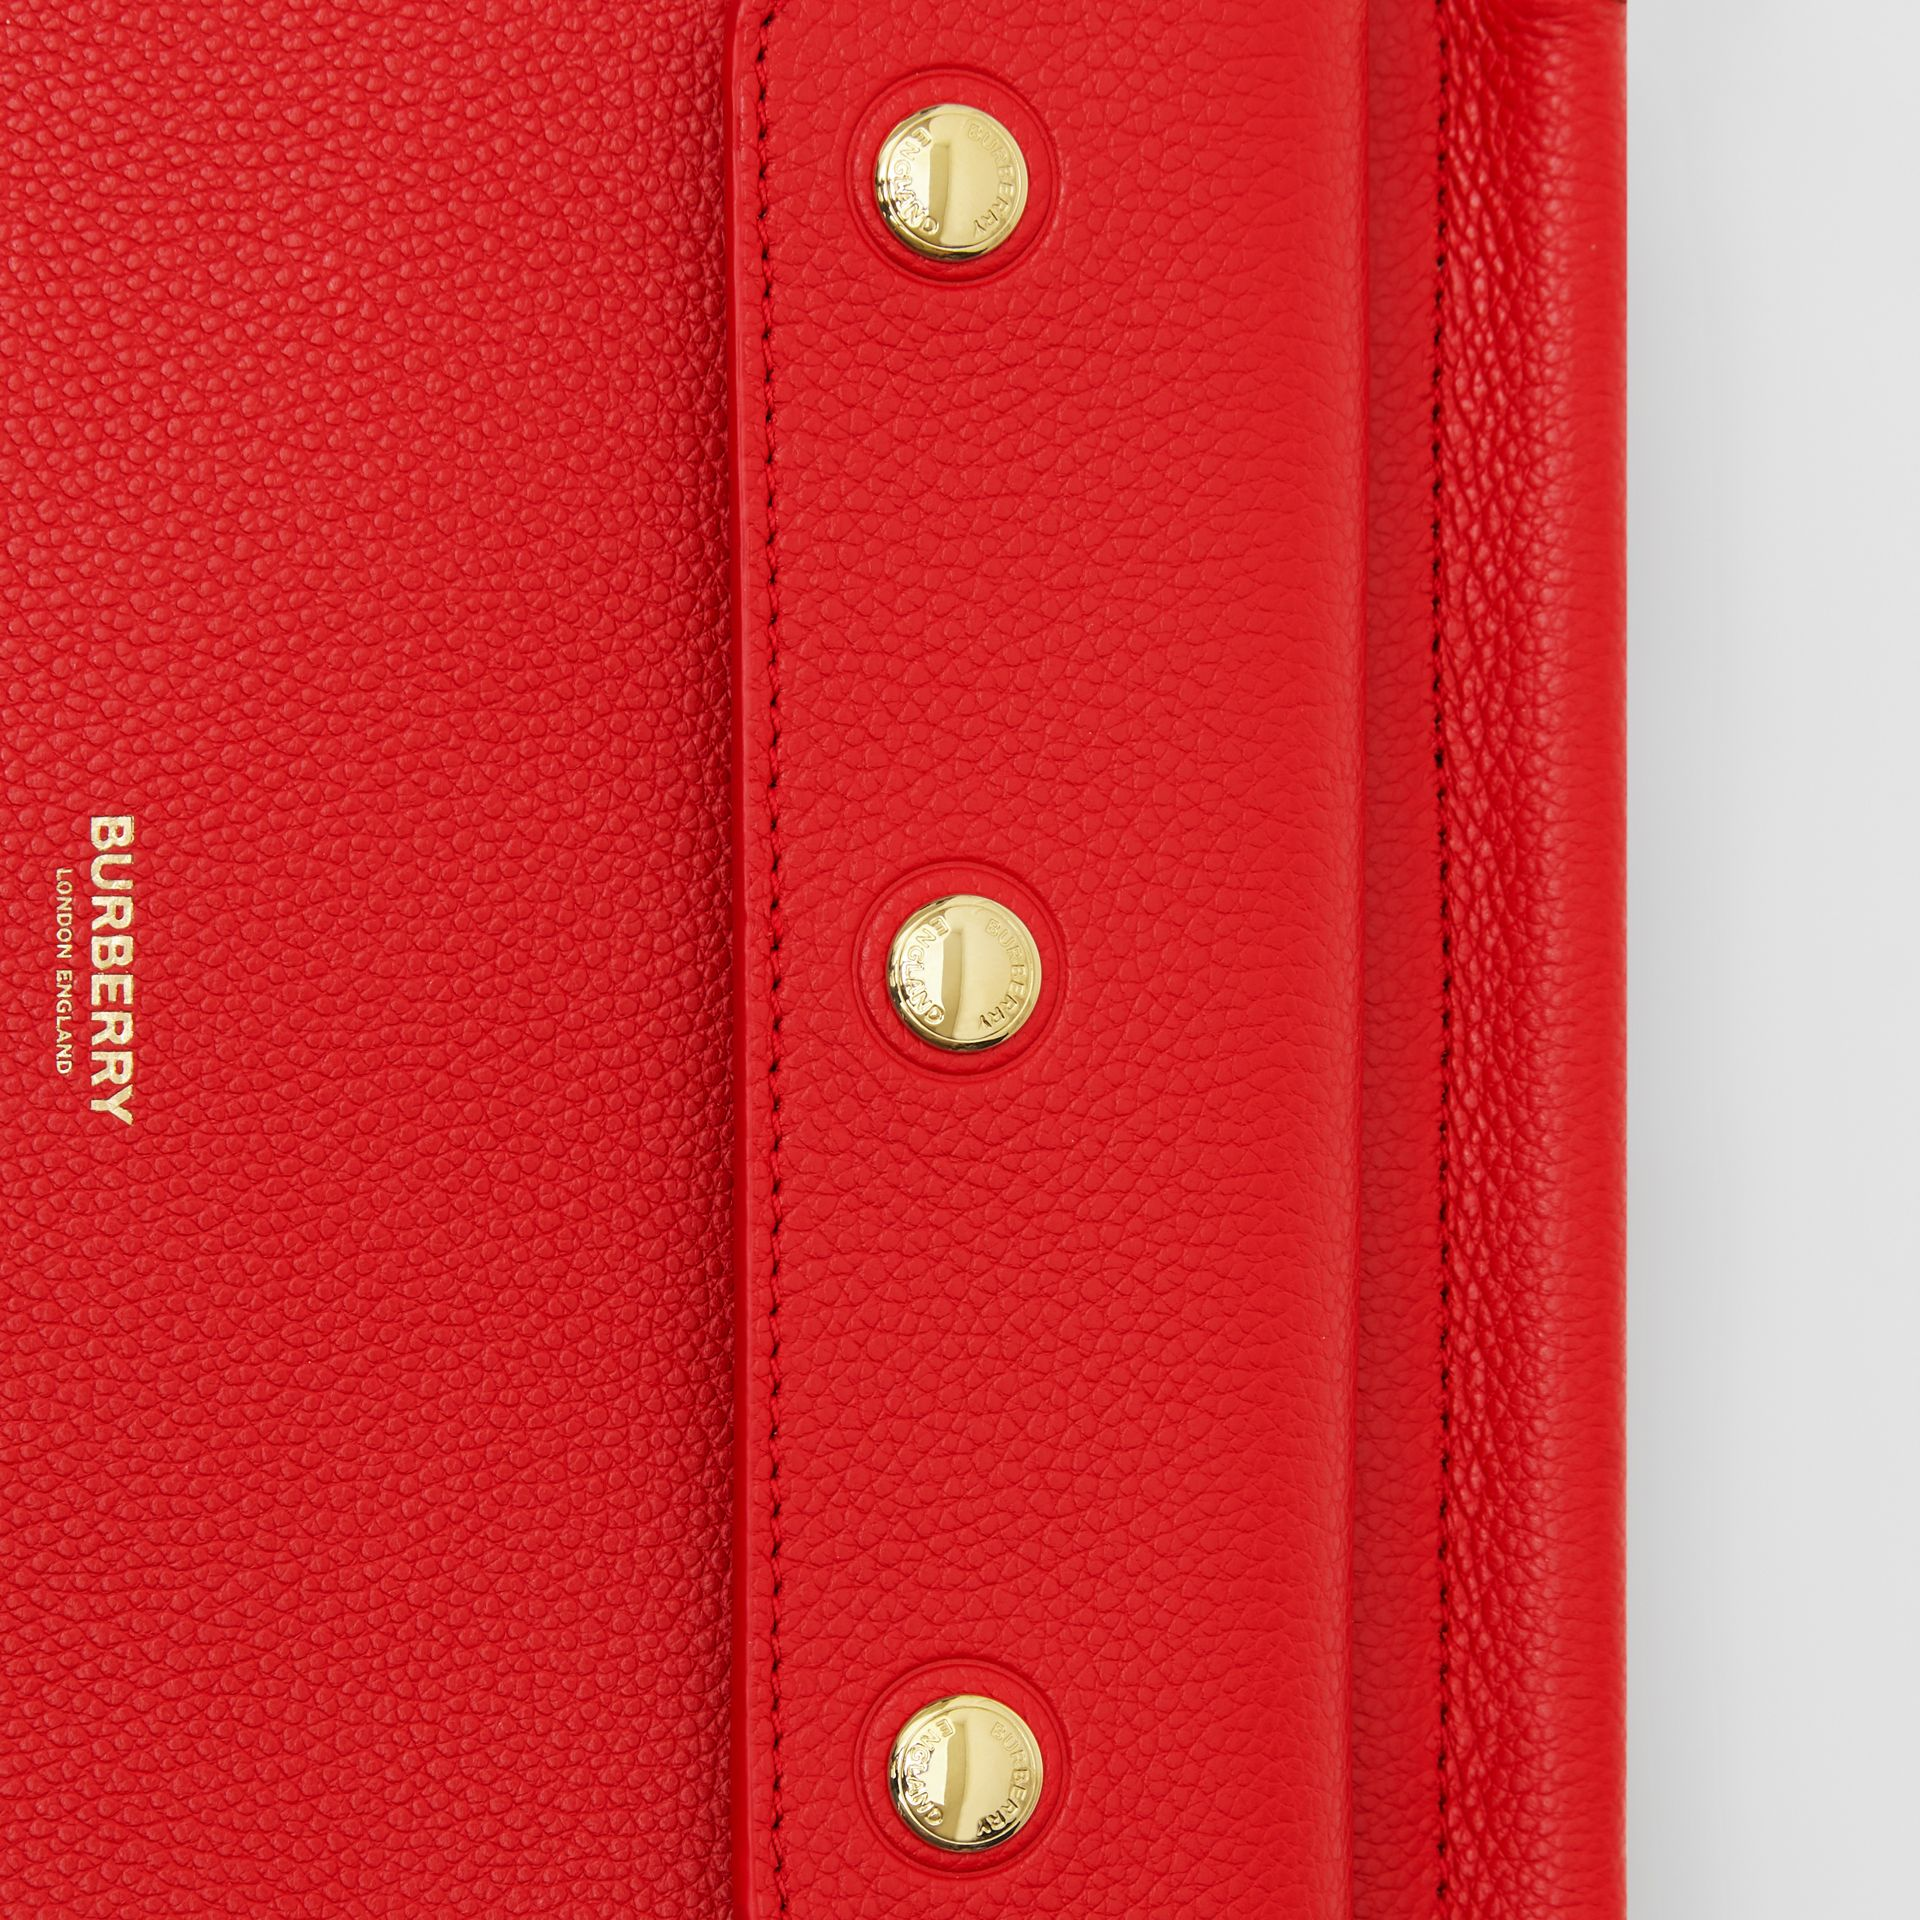 Mini Leather Title Bag with Pocket Detail in Bright Military Red - Women | Burberry - gallery image 1